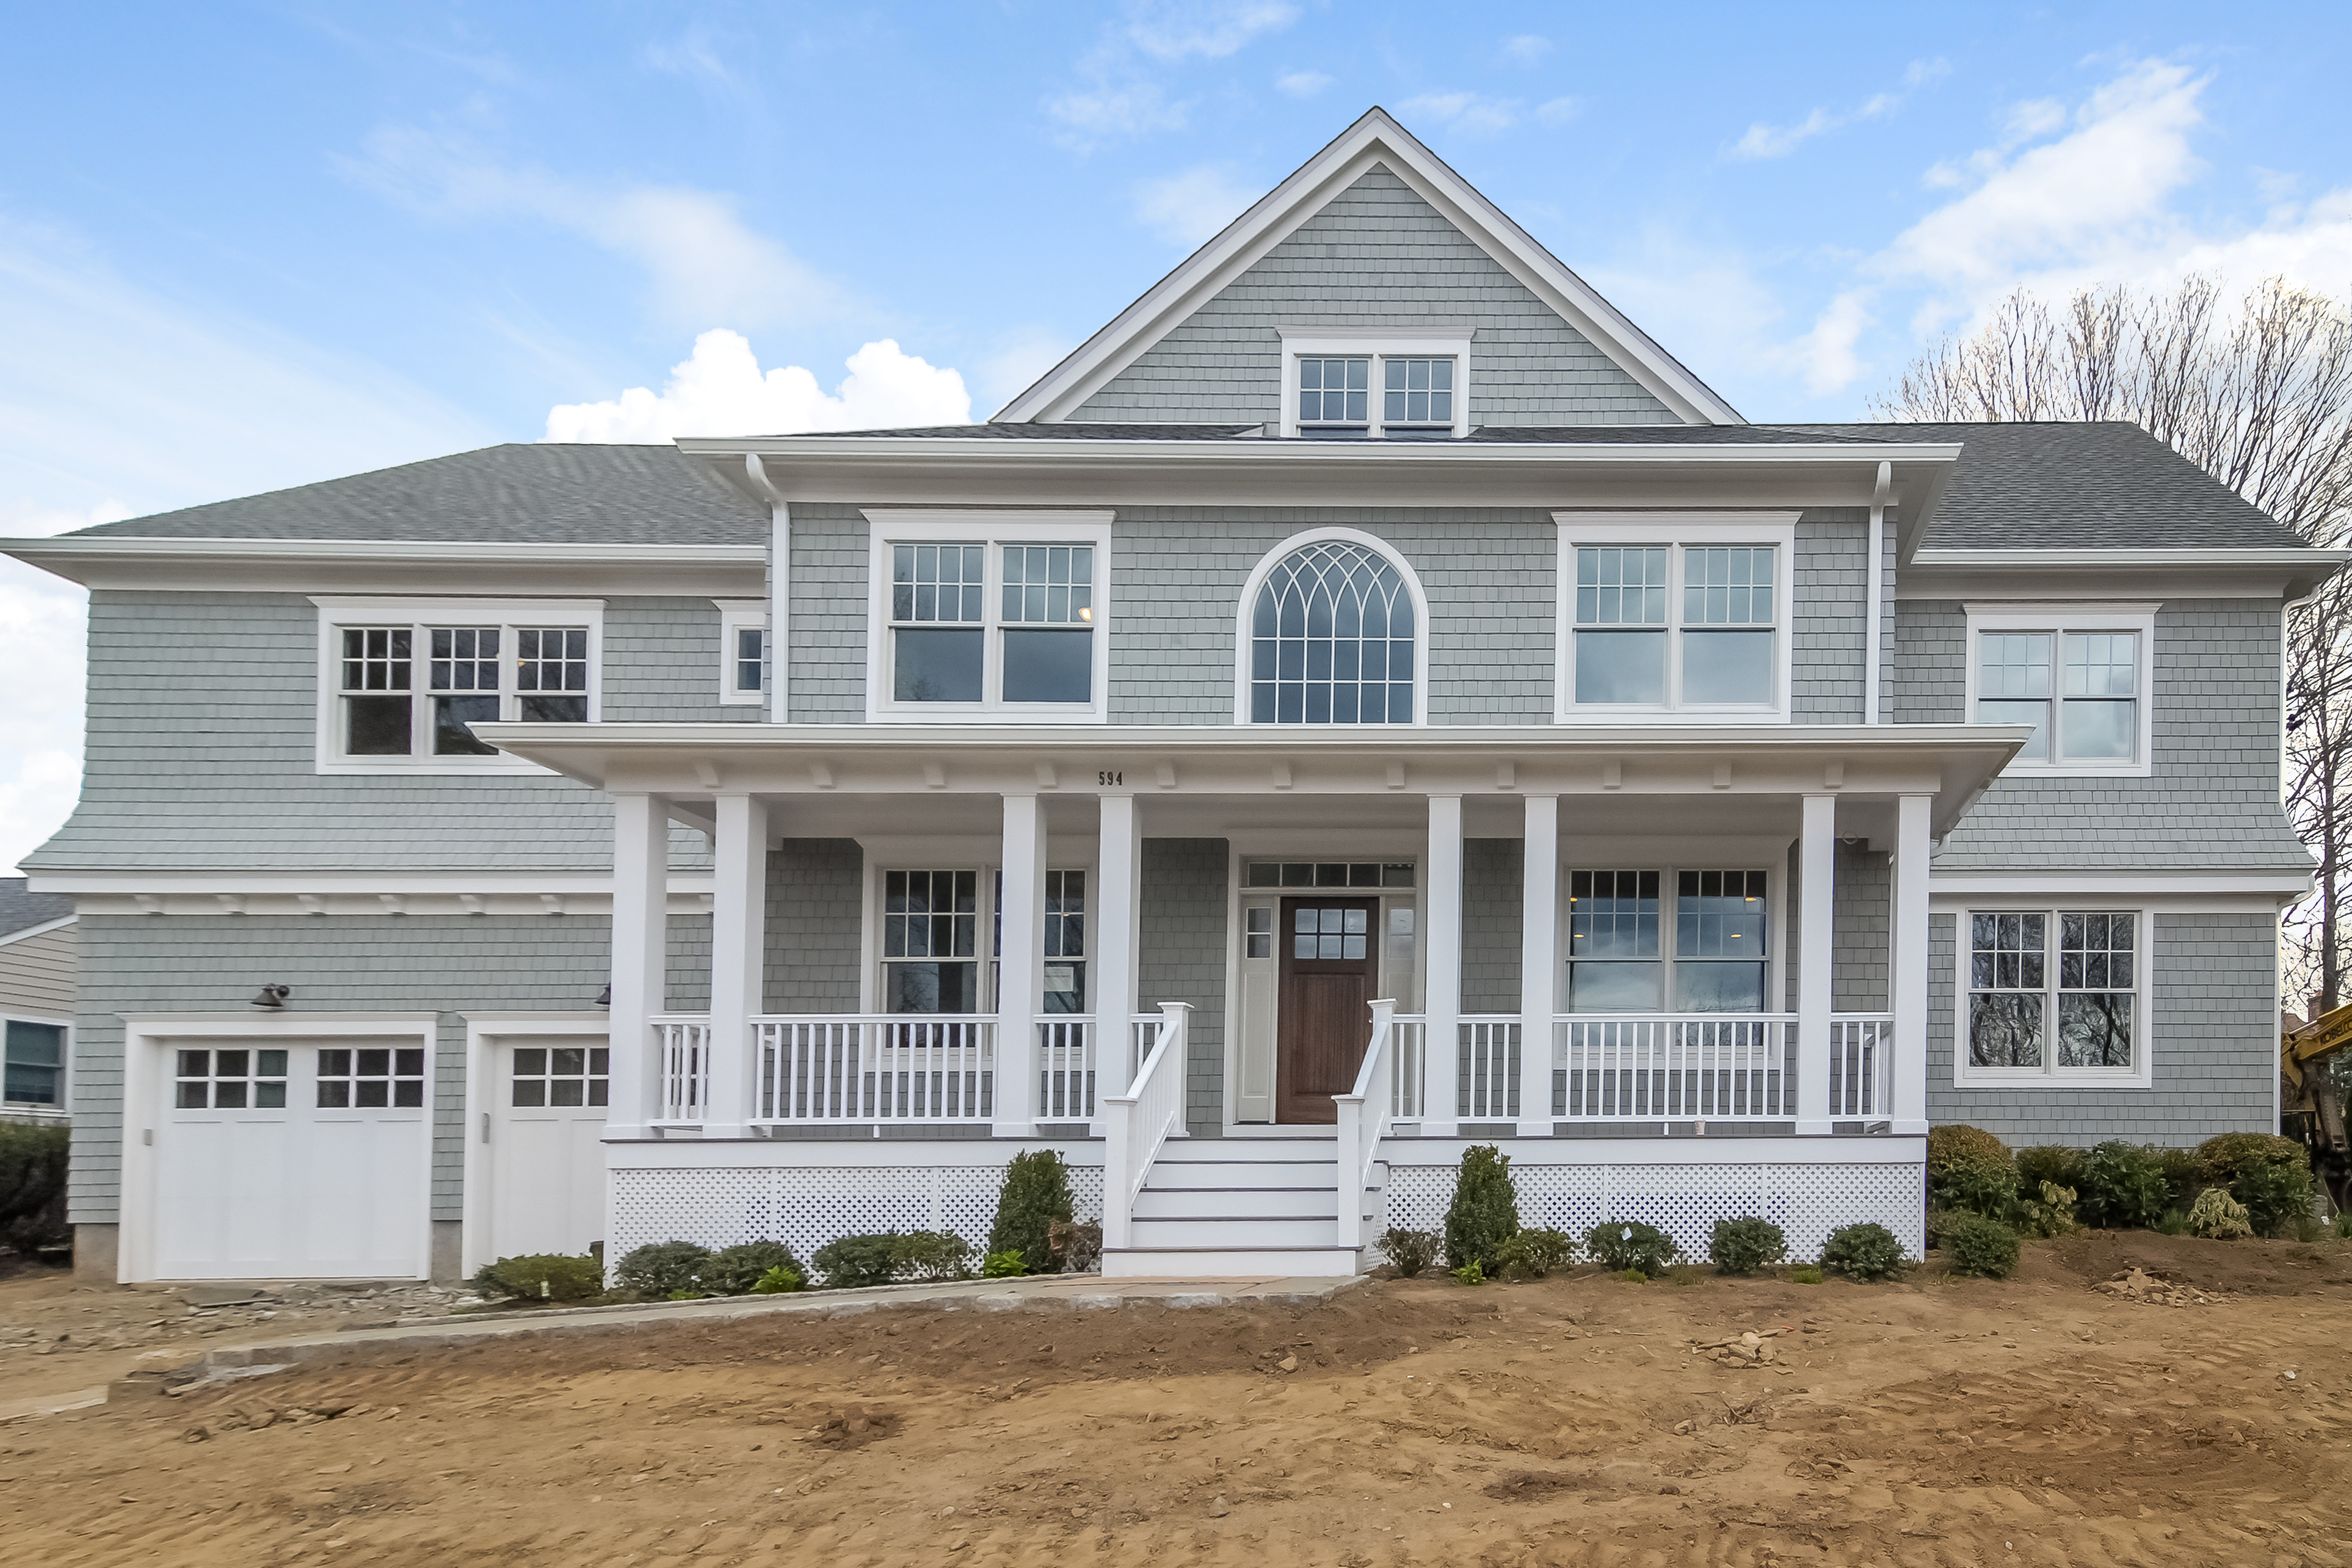 Single Family Home for Sale at Exceptional New Construction in Shore Acres. 594 Alda Road Mamaroneck, New York 10543 United States